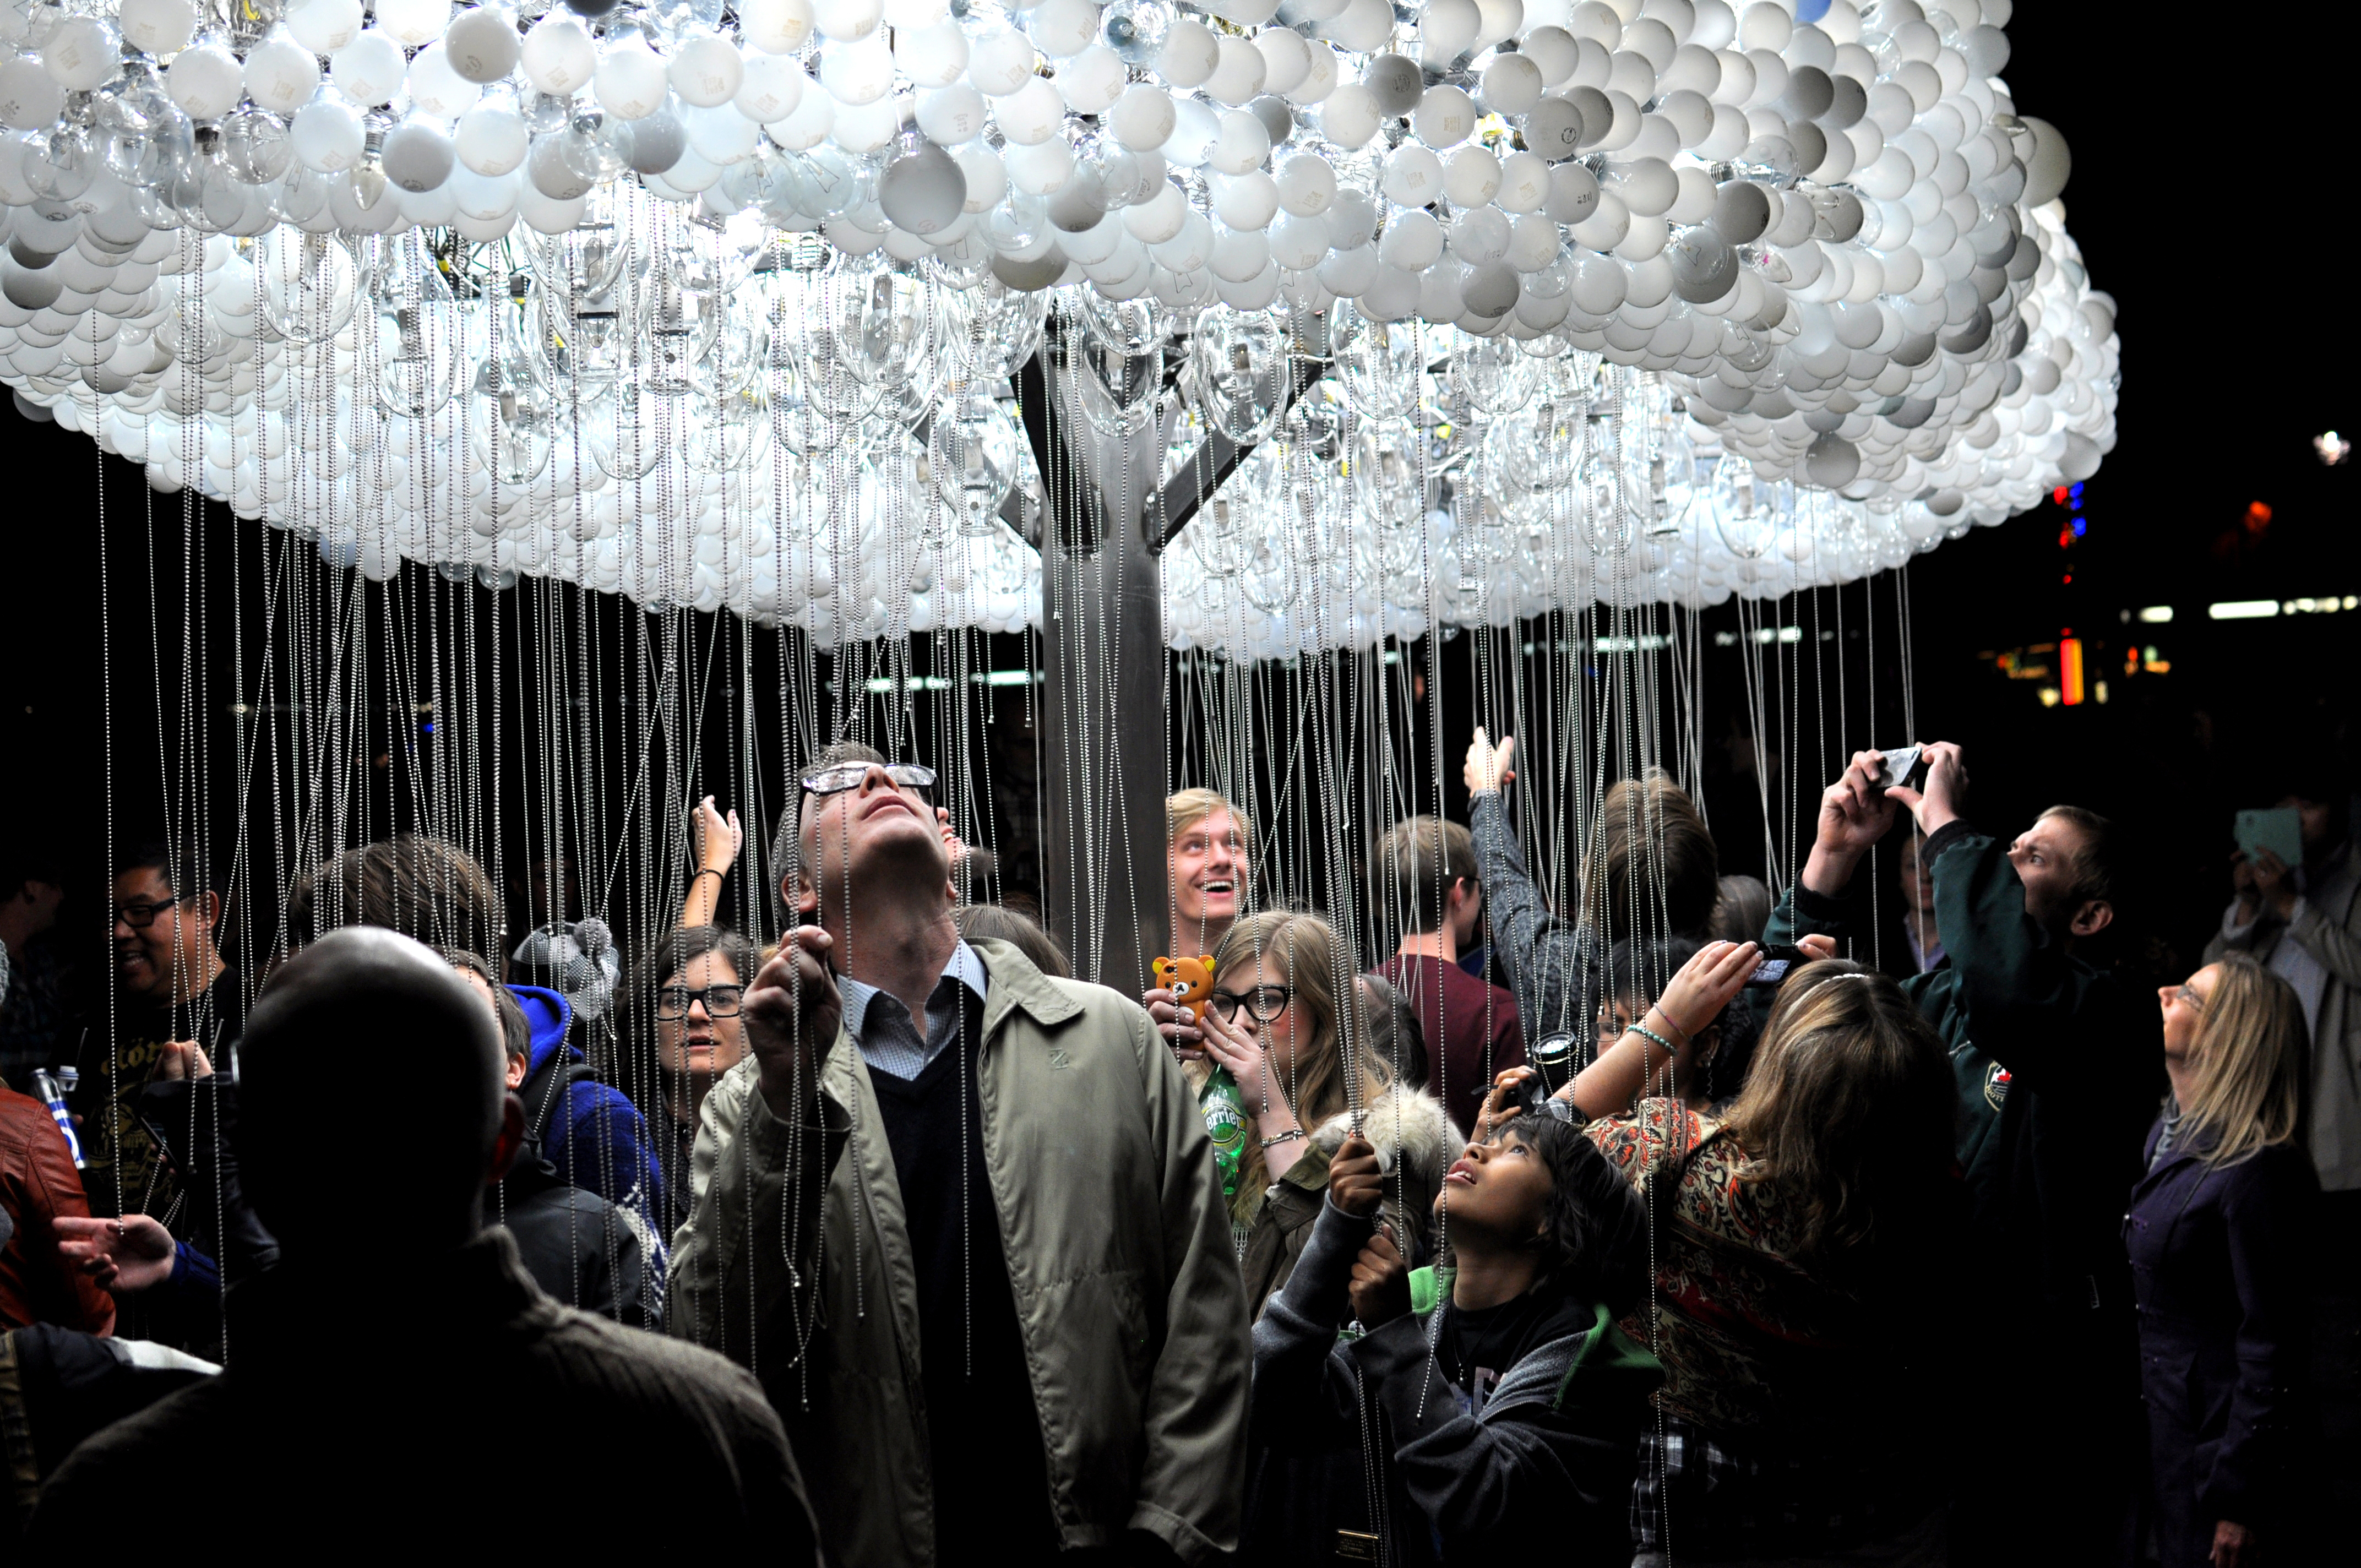 Cloud A Striking Interactive Installation Made From